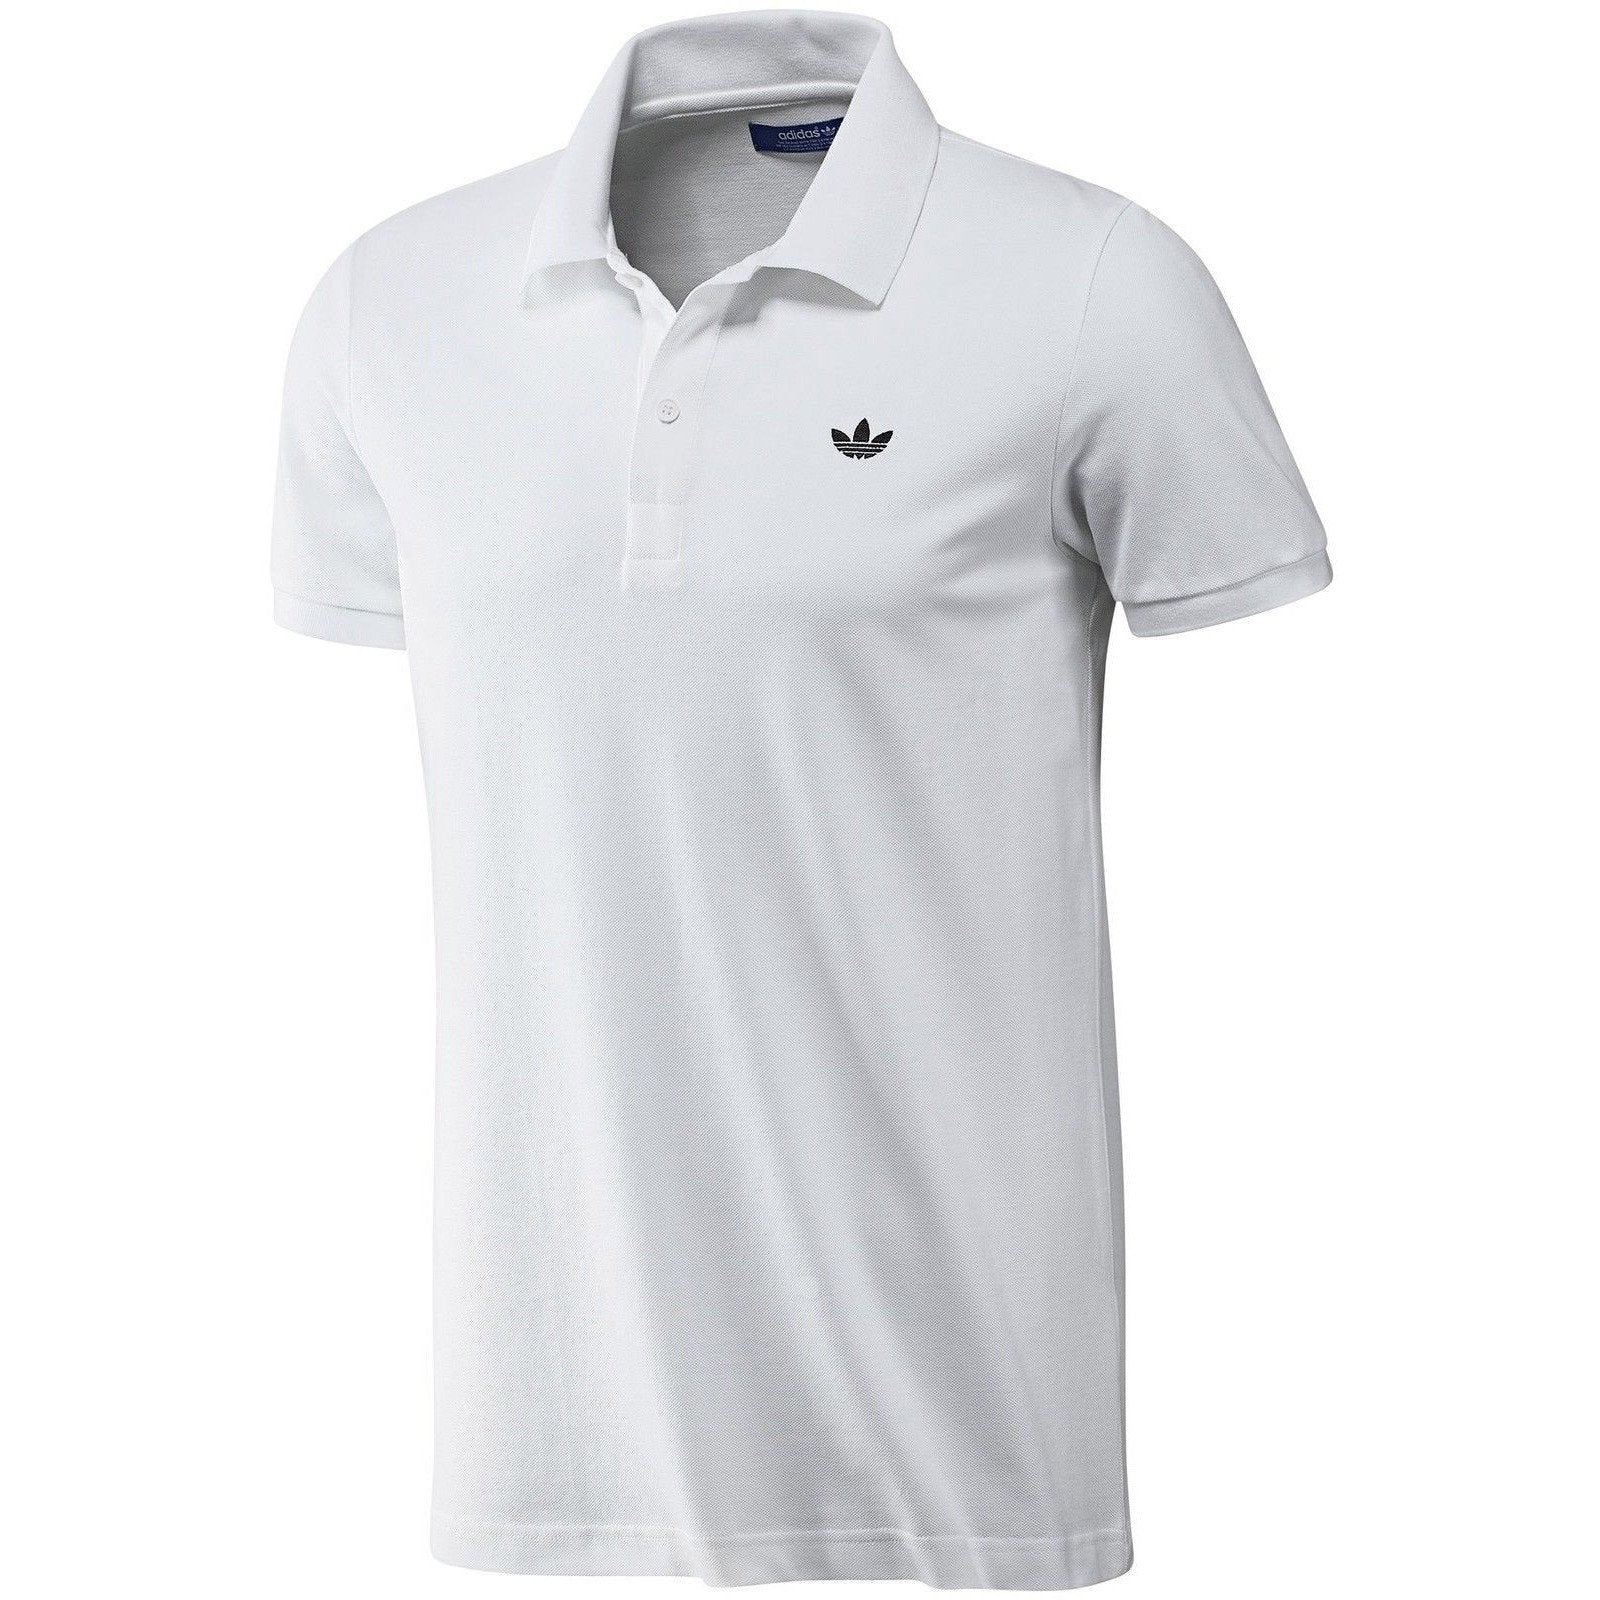 Adidas Polo Shirts - White